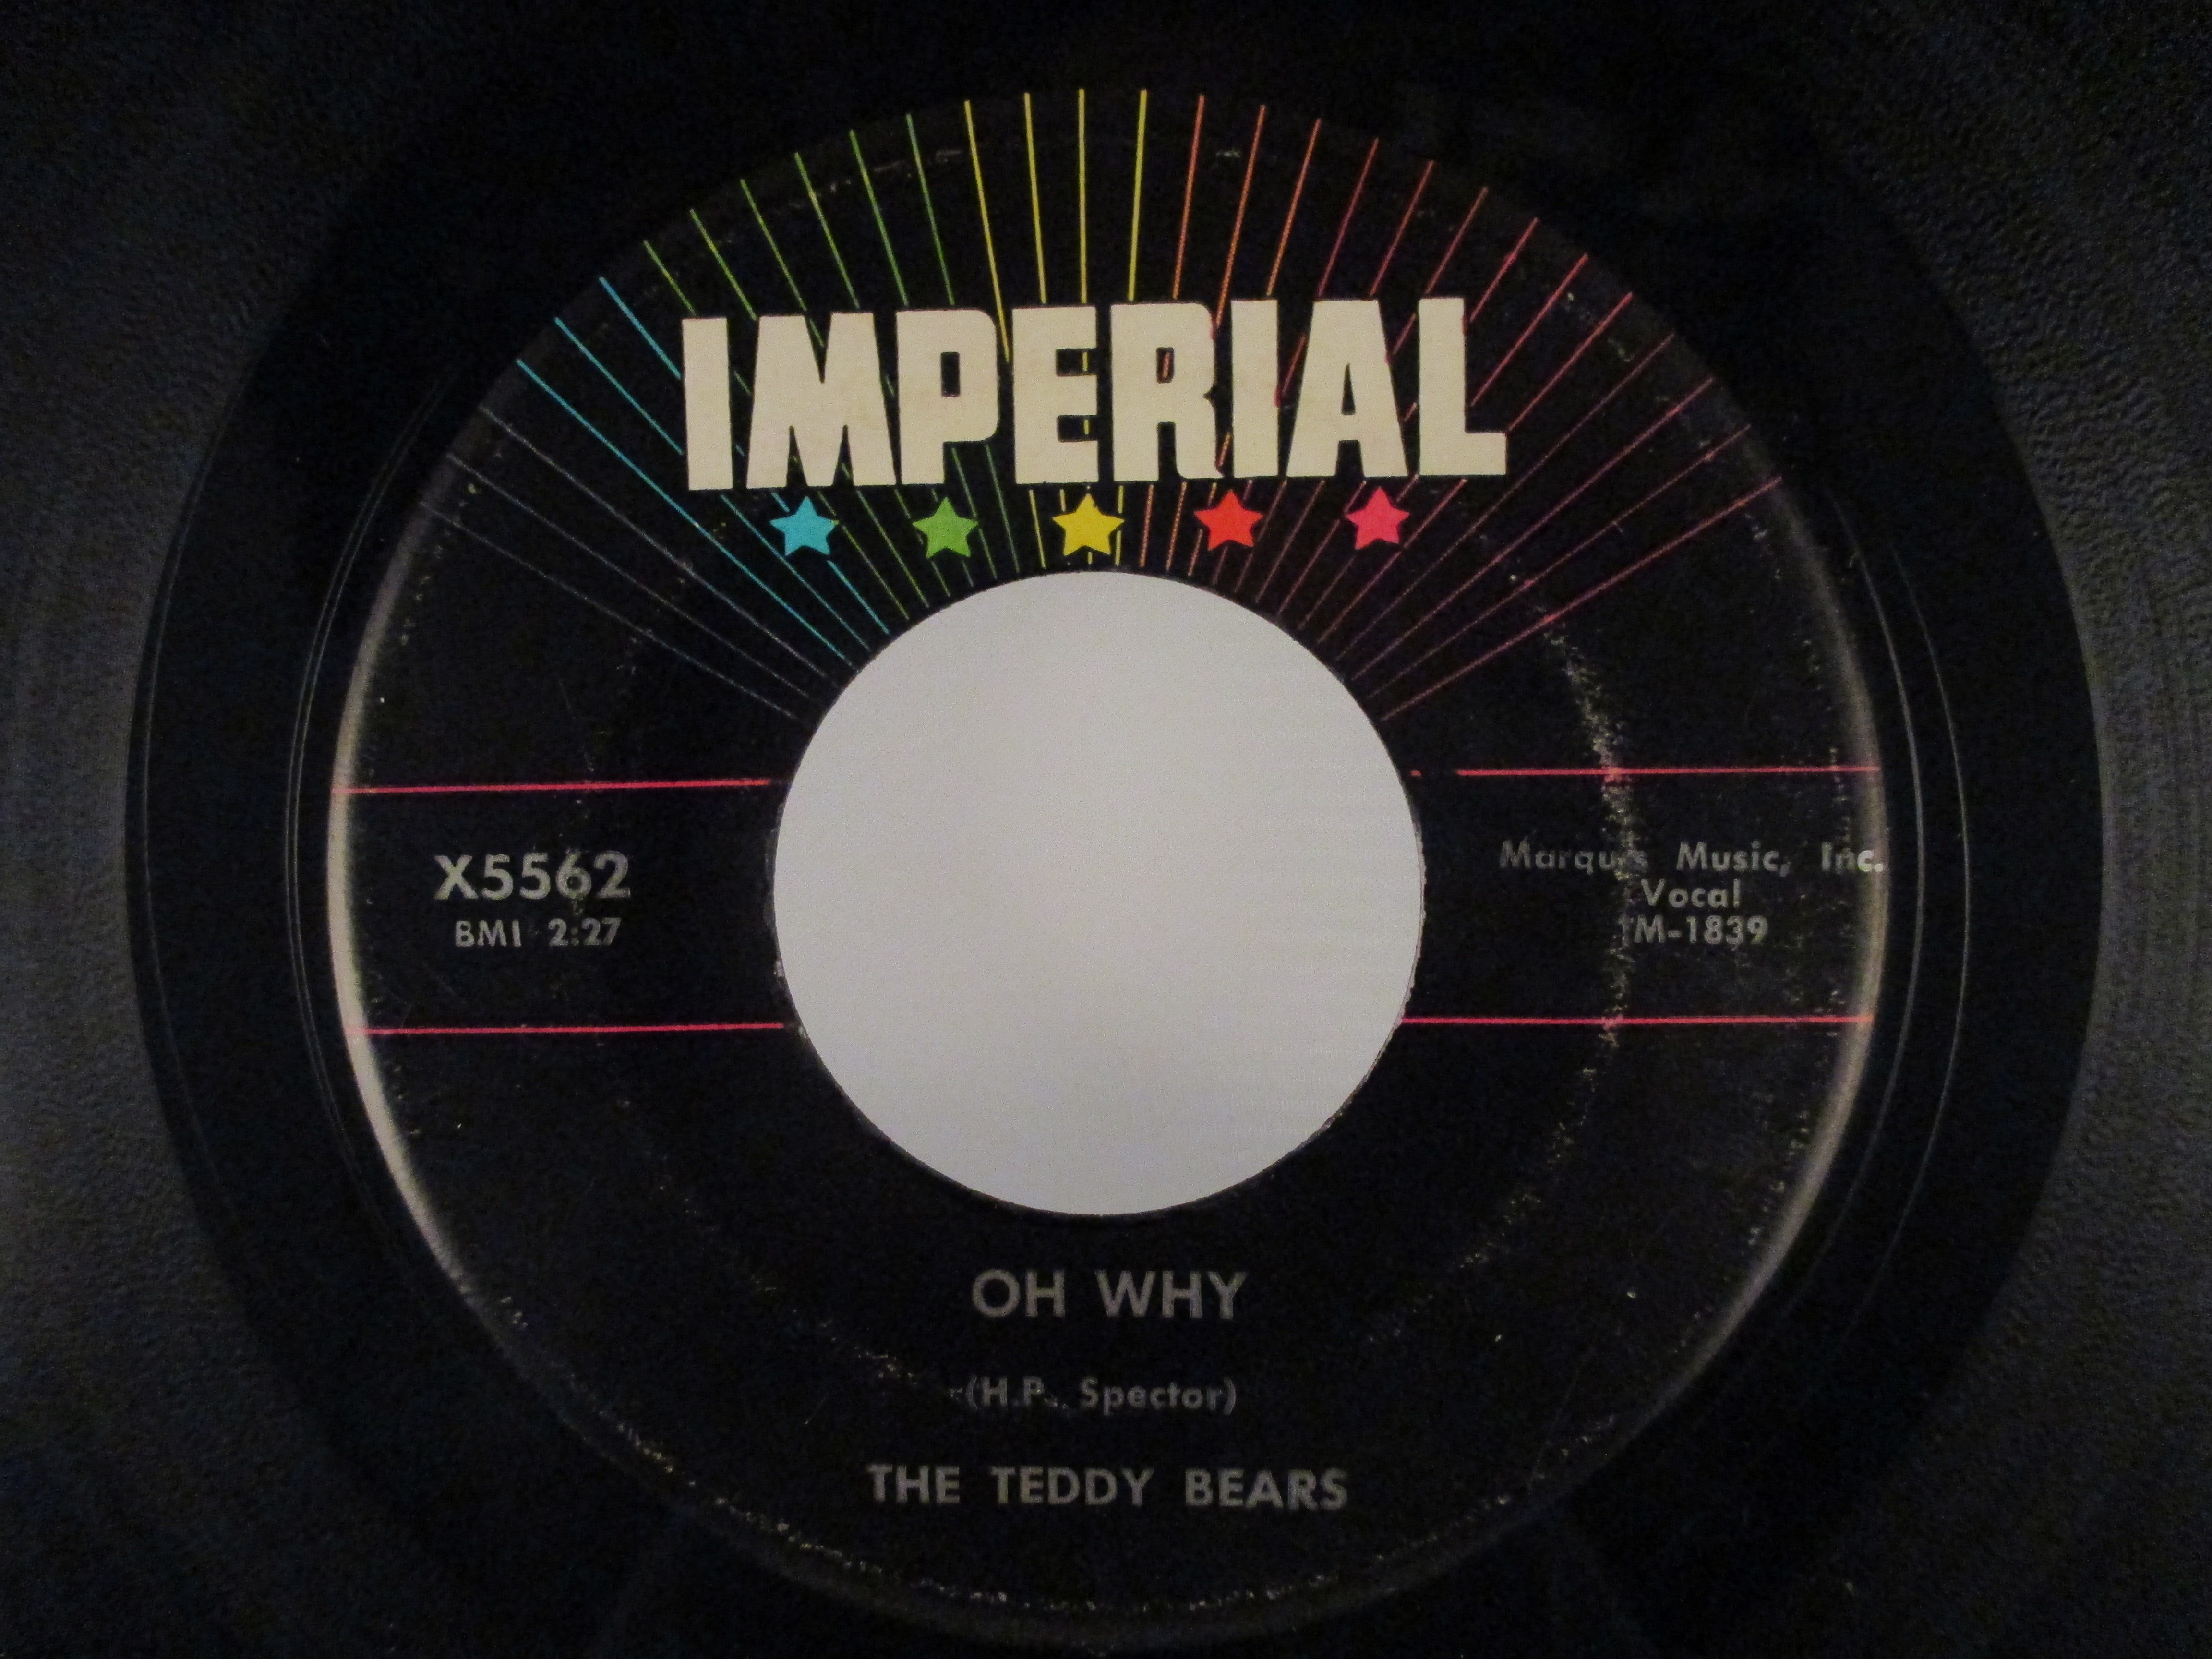 TEDDY BEARS (with PHIL SPECTOR) : Oh why / I don't need you anymore